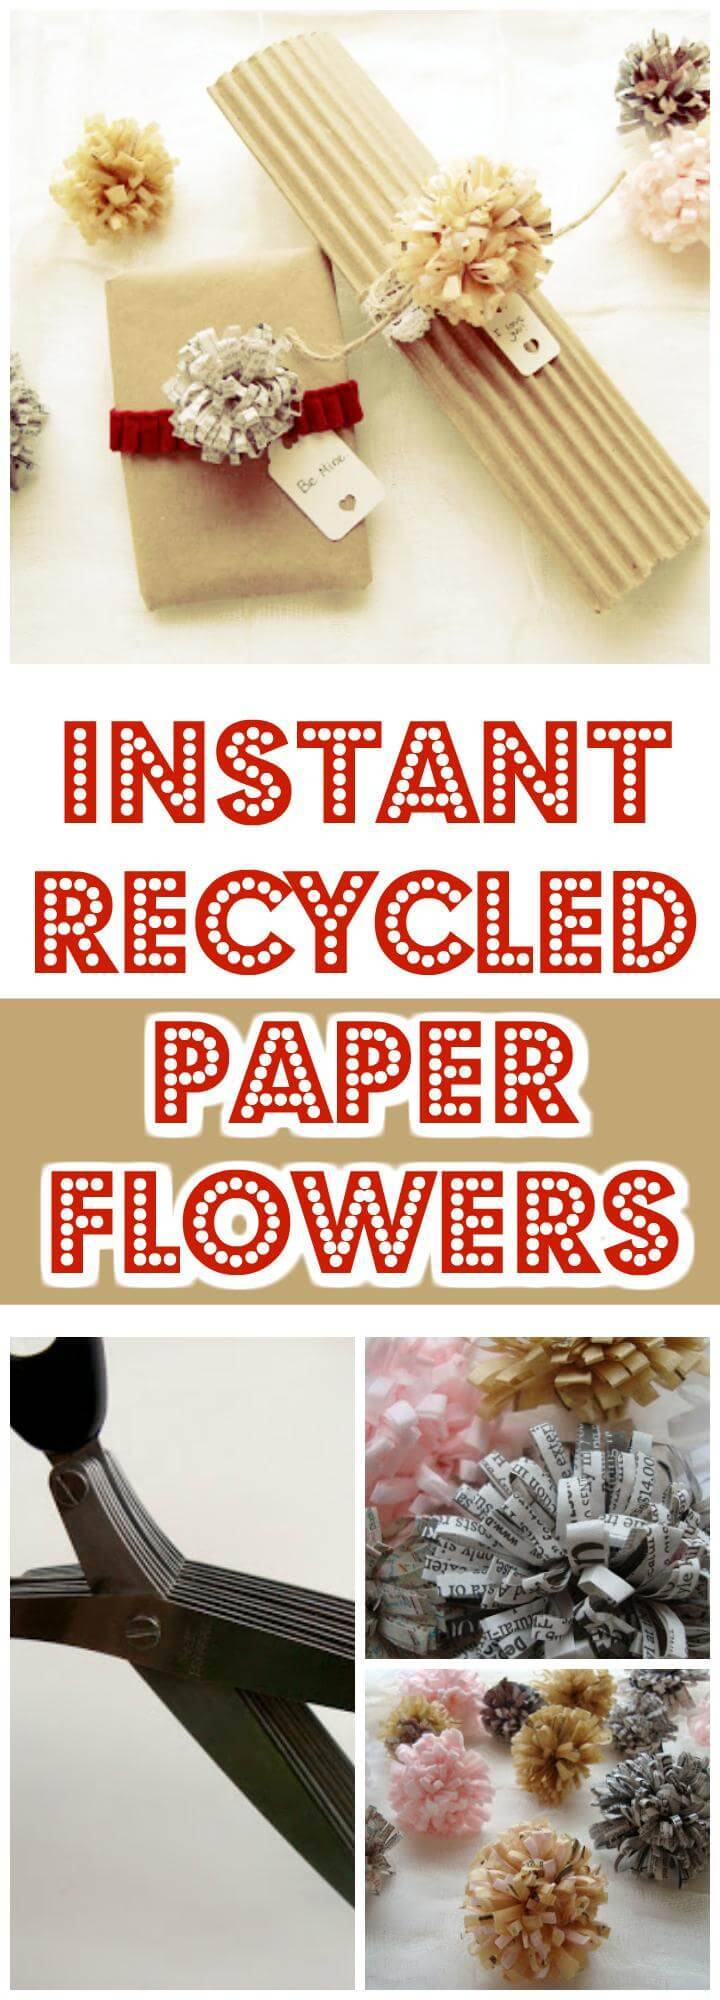 timeless recycled paper flowers